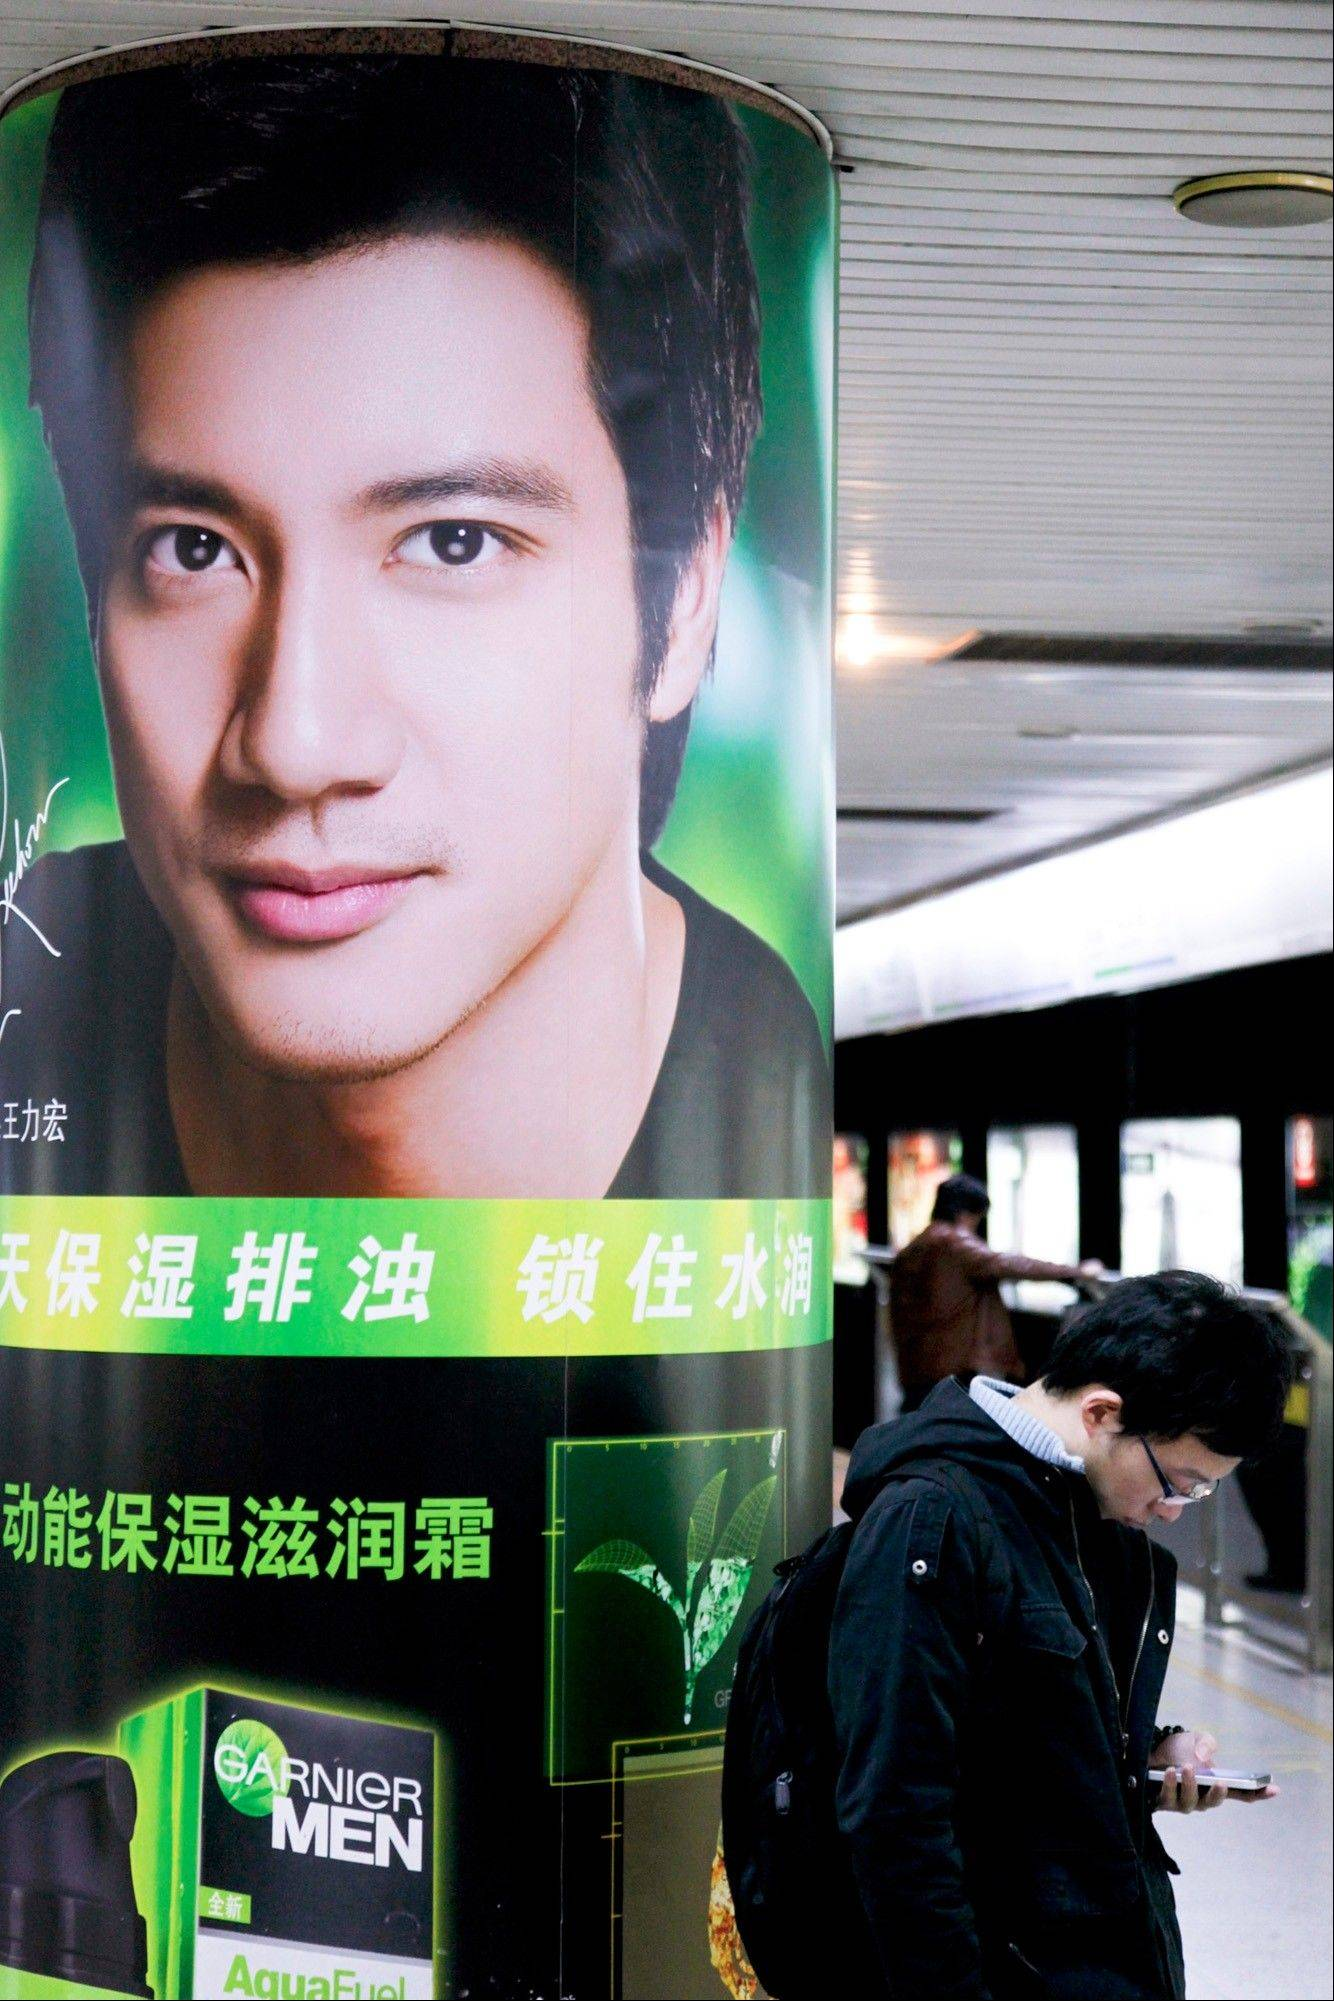 Global sales of male toiletries other than razors, blades and shaving cream will rise 5 percent to $17.5 billion this year, surpassing the shaving segment for the first time. Shown, an ad for a men's moisturizer at a subway station in Shanghai in 2010.